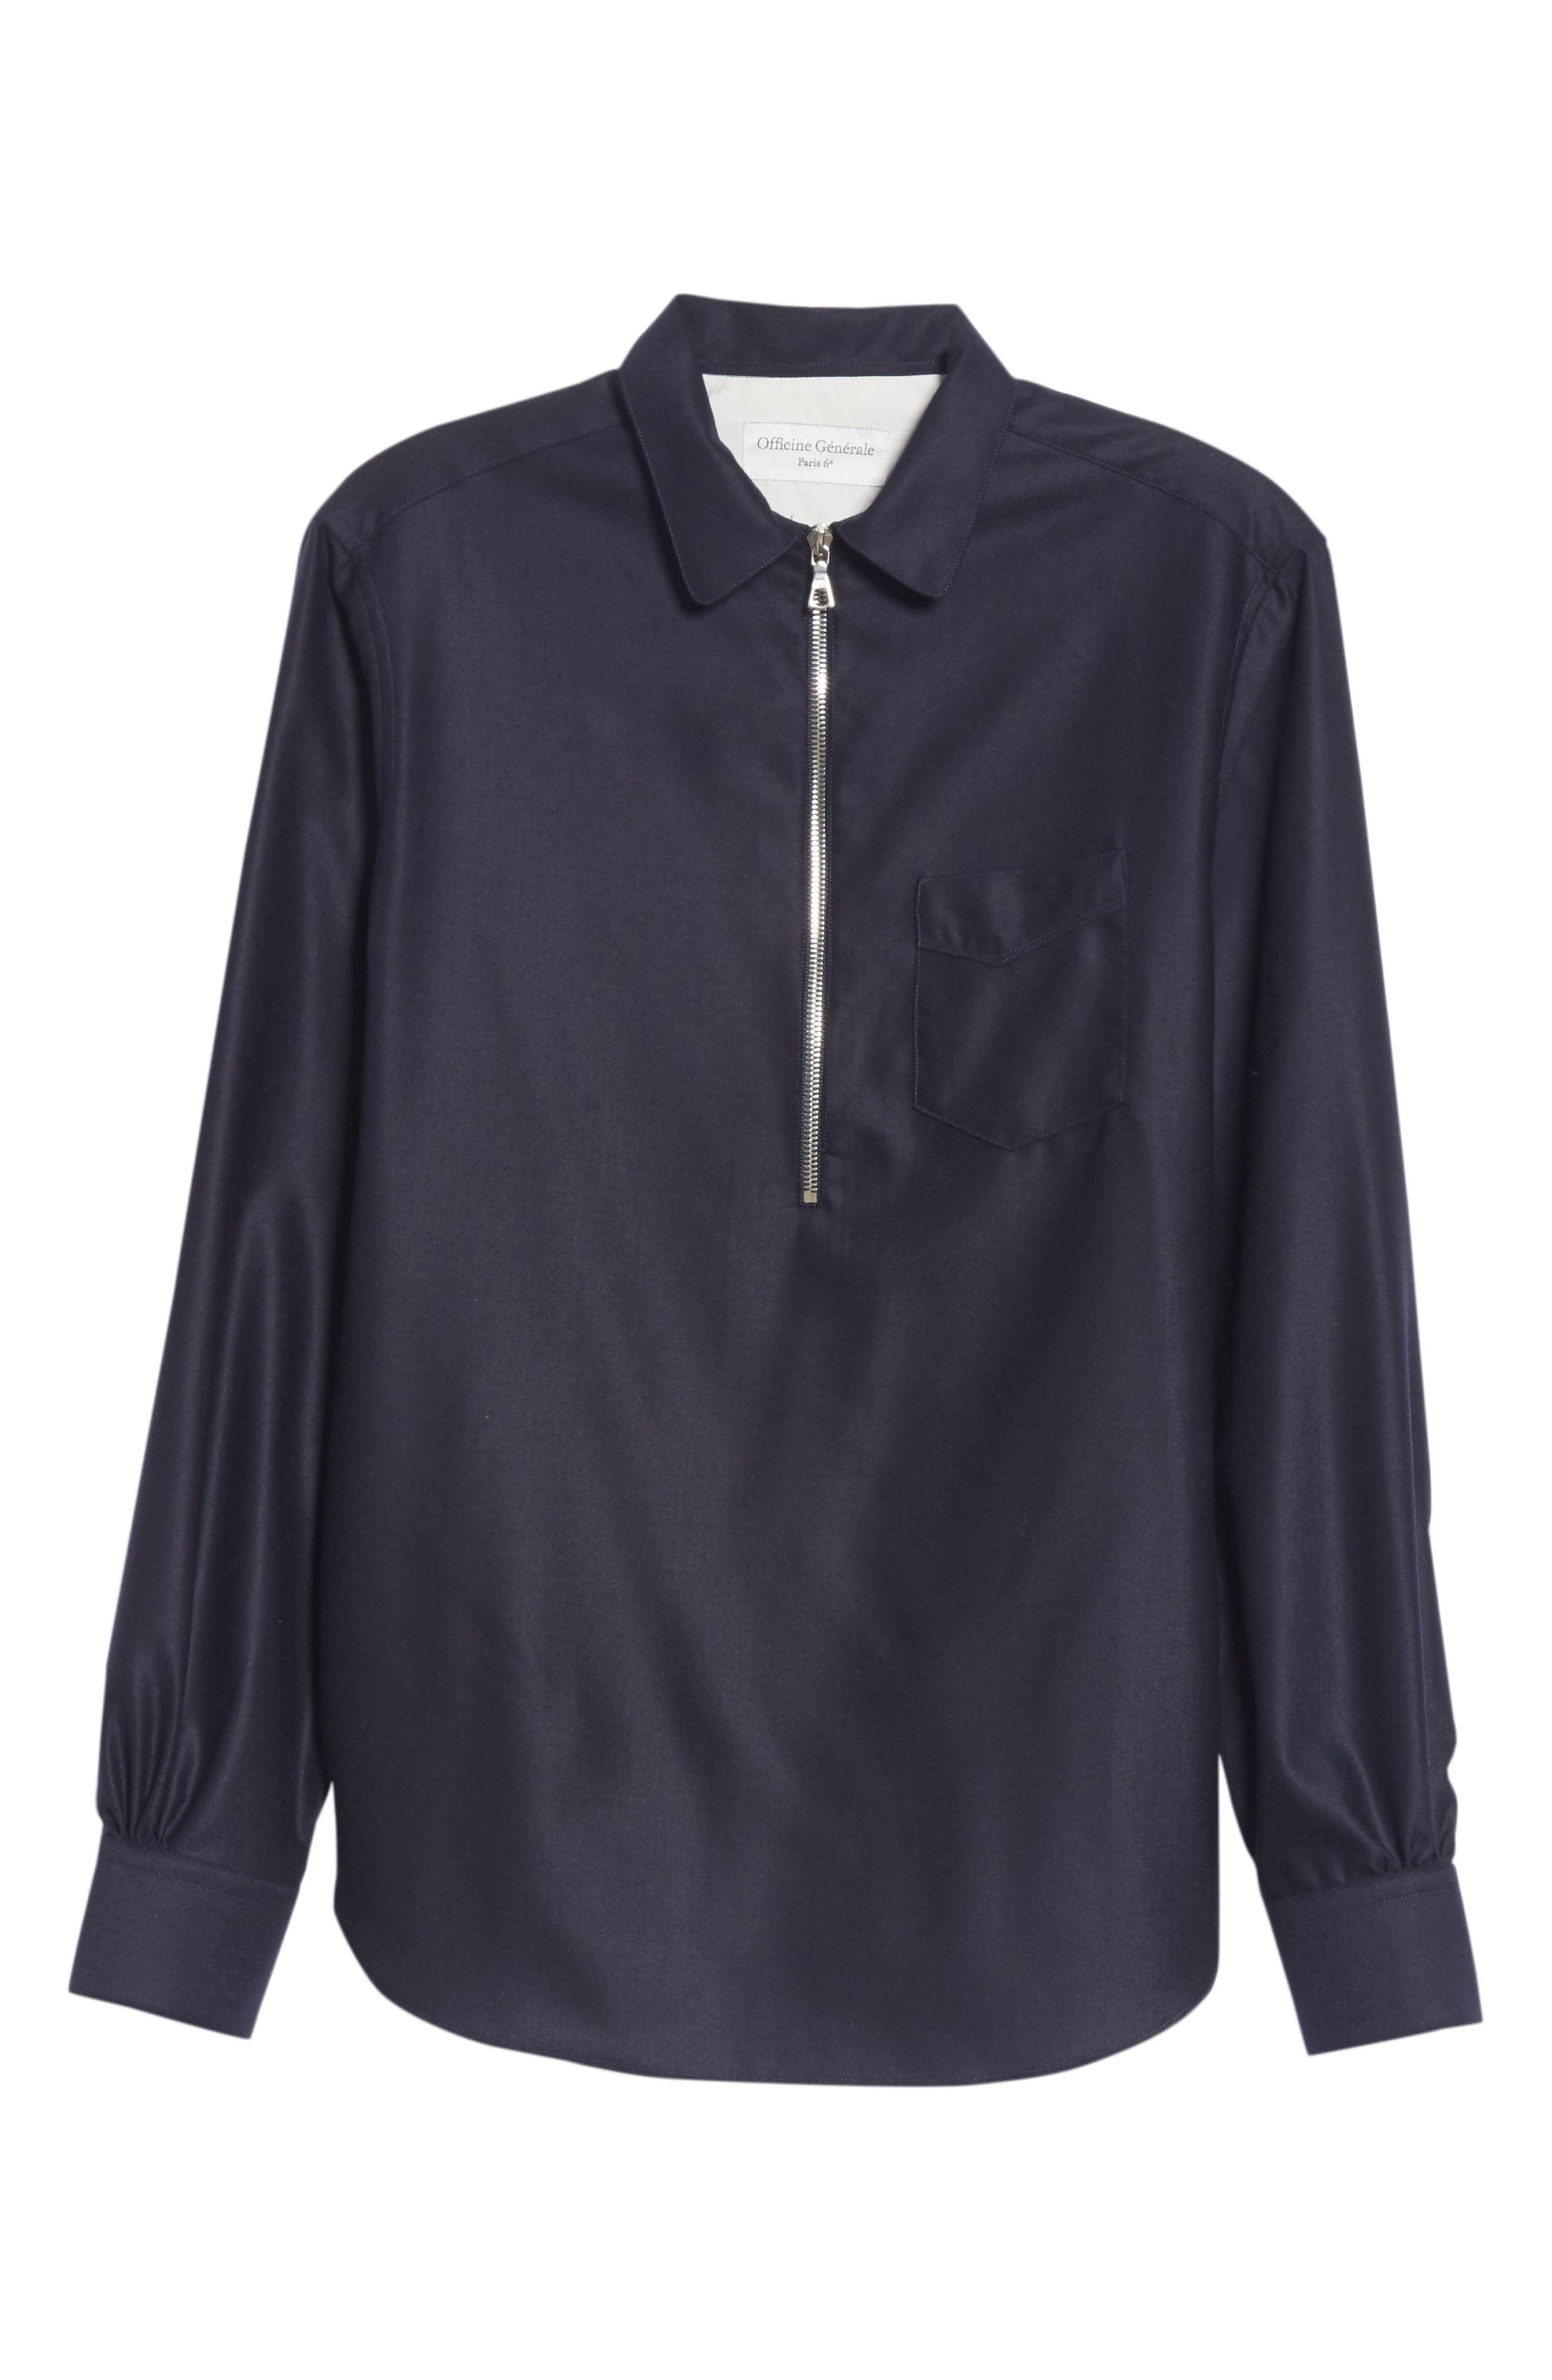 Officine Générale Woven Pullover Shirt,                             Alternate thumbnail 6, color,                             NAVY